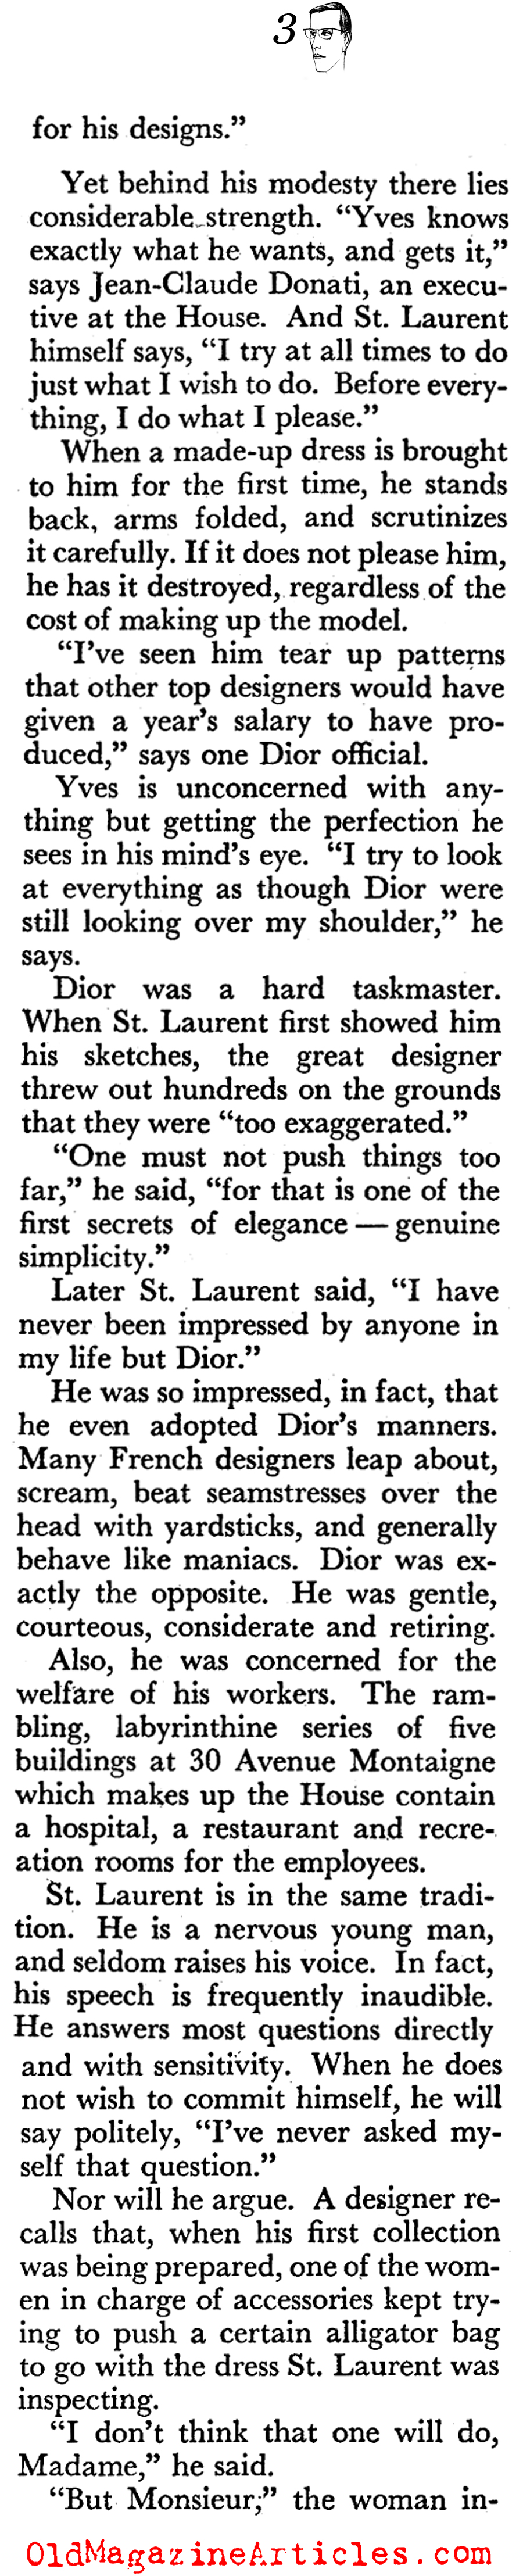 Yves Saint Laurent Takes Over the House of Dior (Coronet Magazine, 1958)